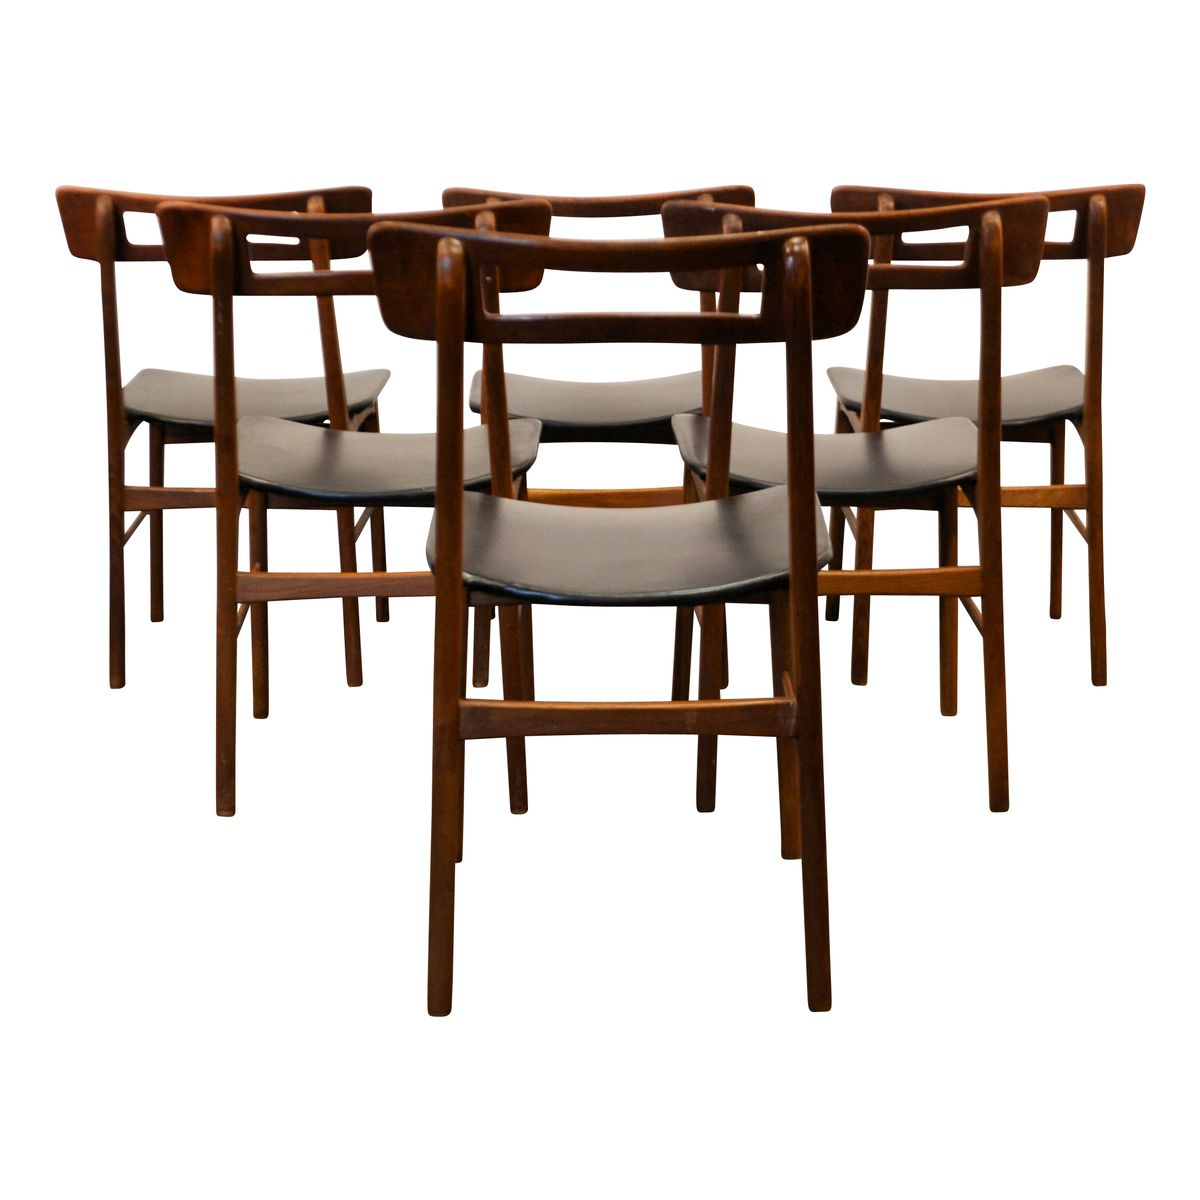 Danish teak dining chairs 1950s set of 6 for sale at pamono for Set of 6 dining chairs